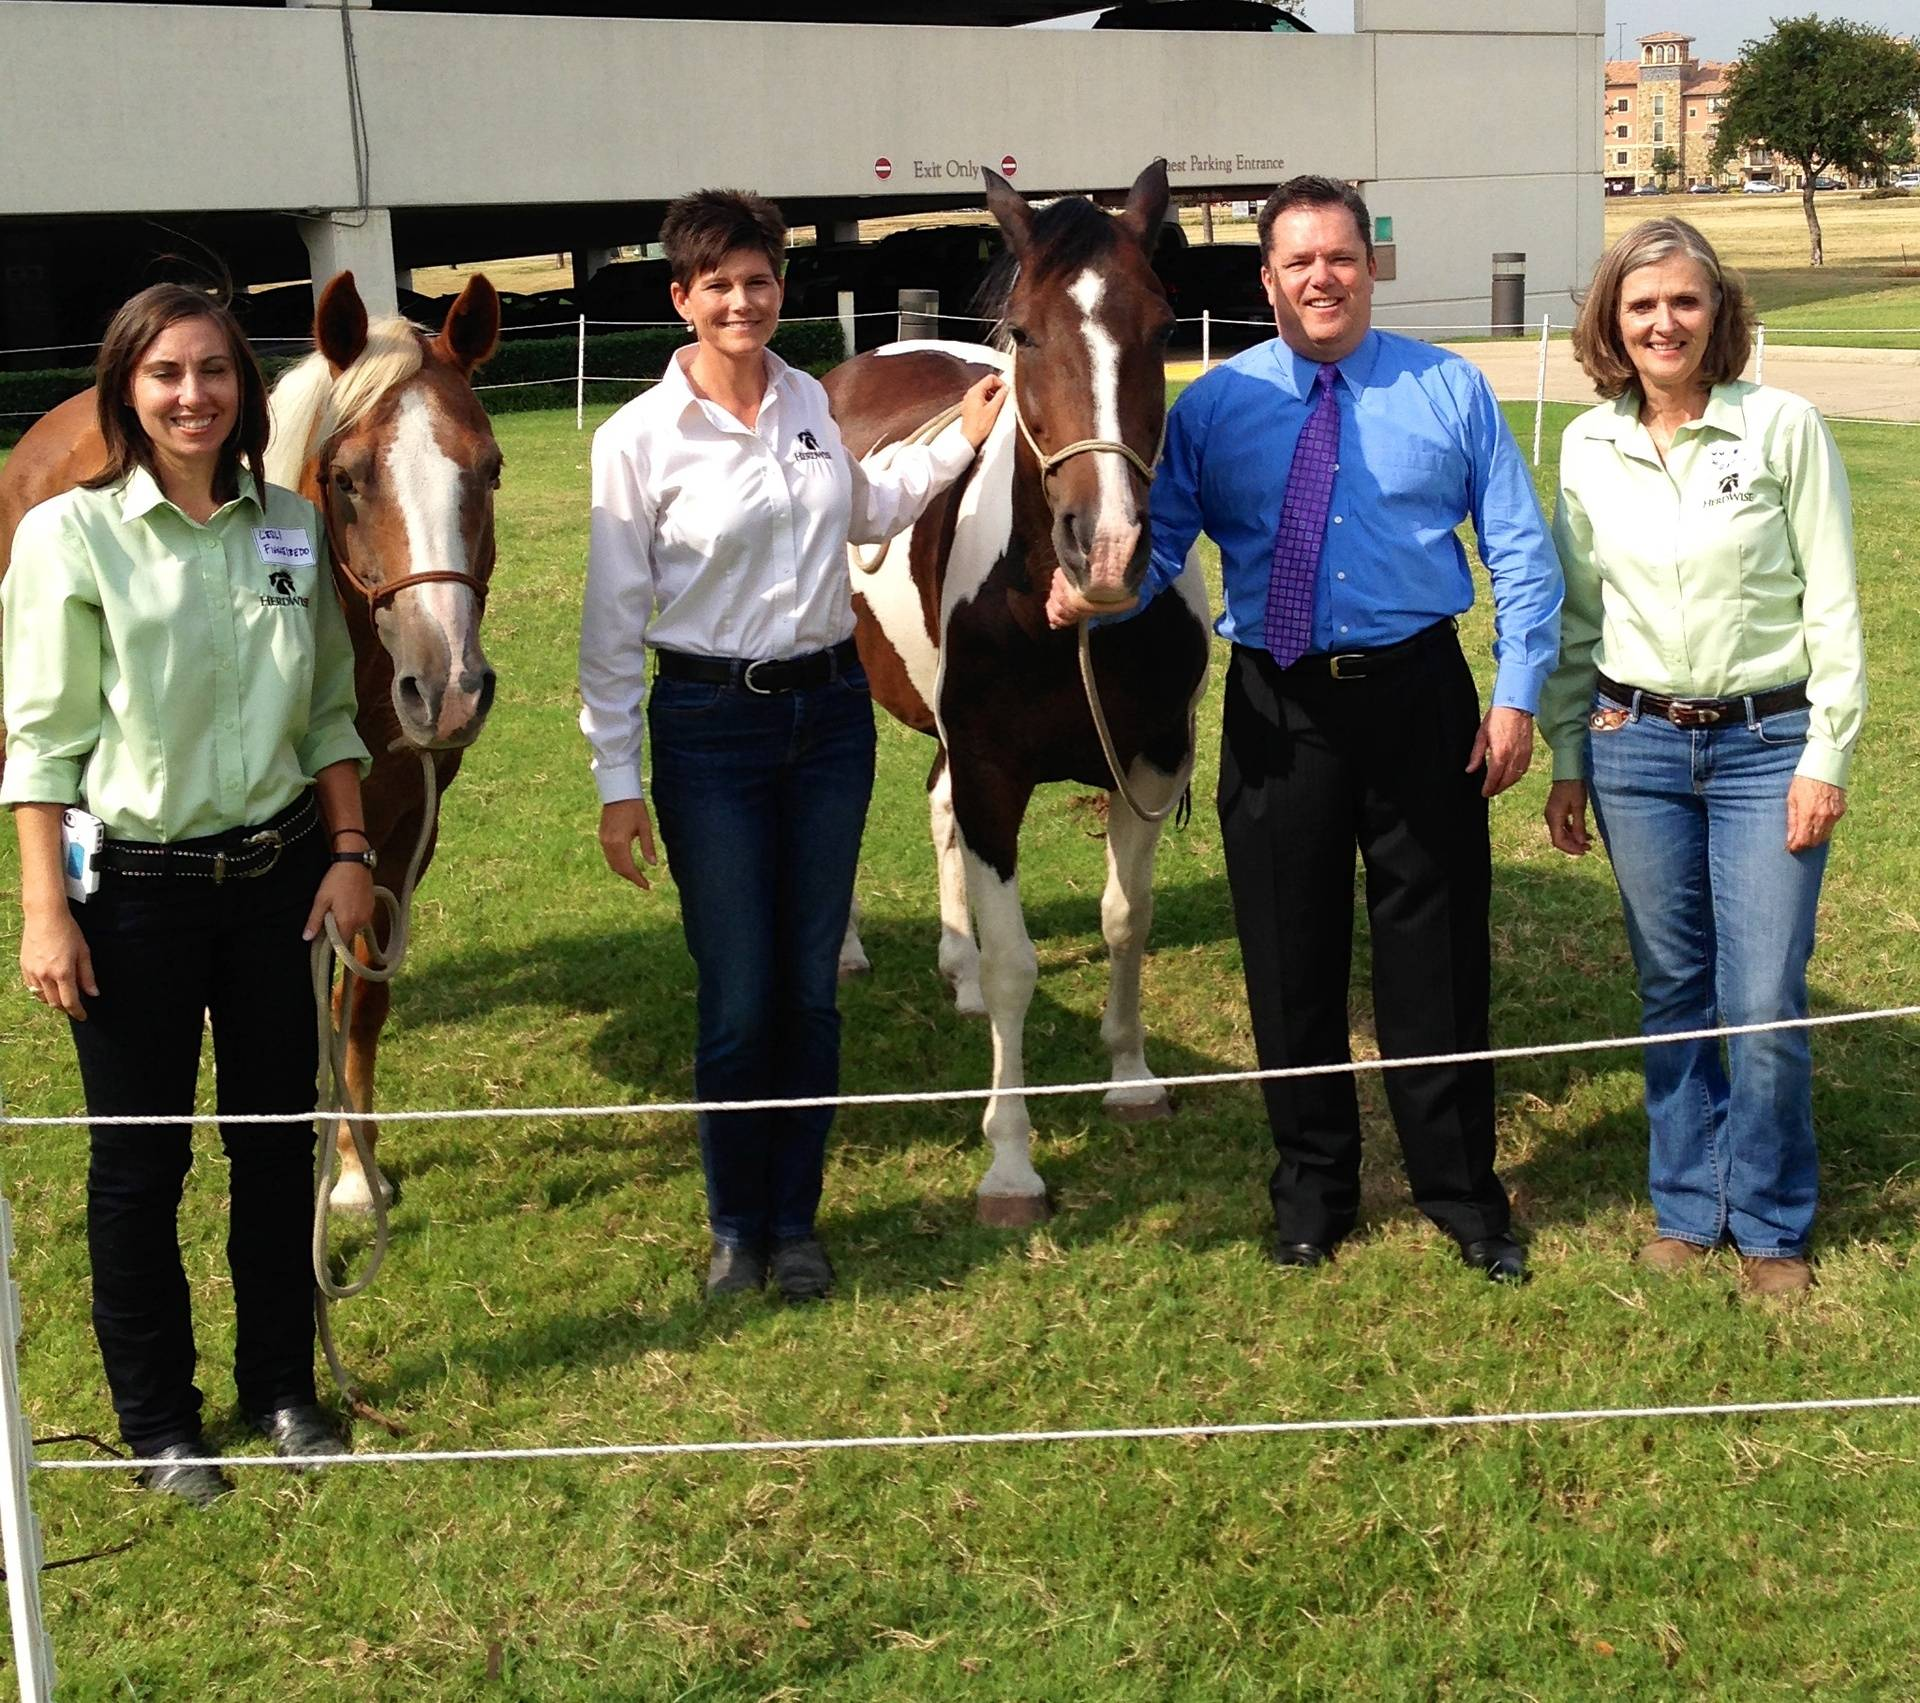 Dr. Brady and Kathy Taylor's Team from HerdWise